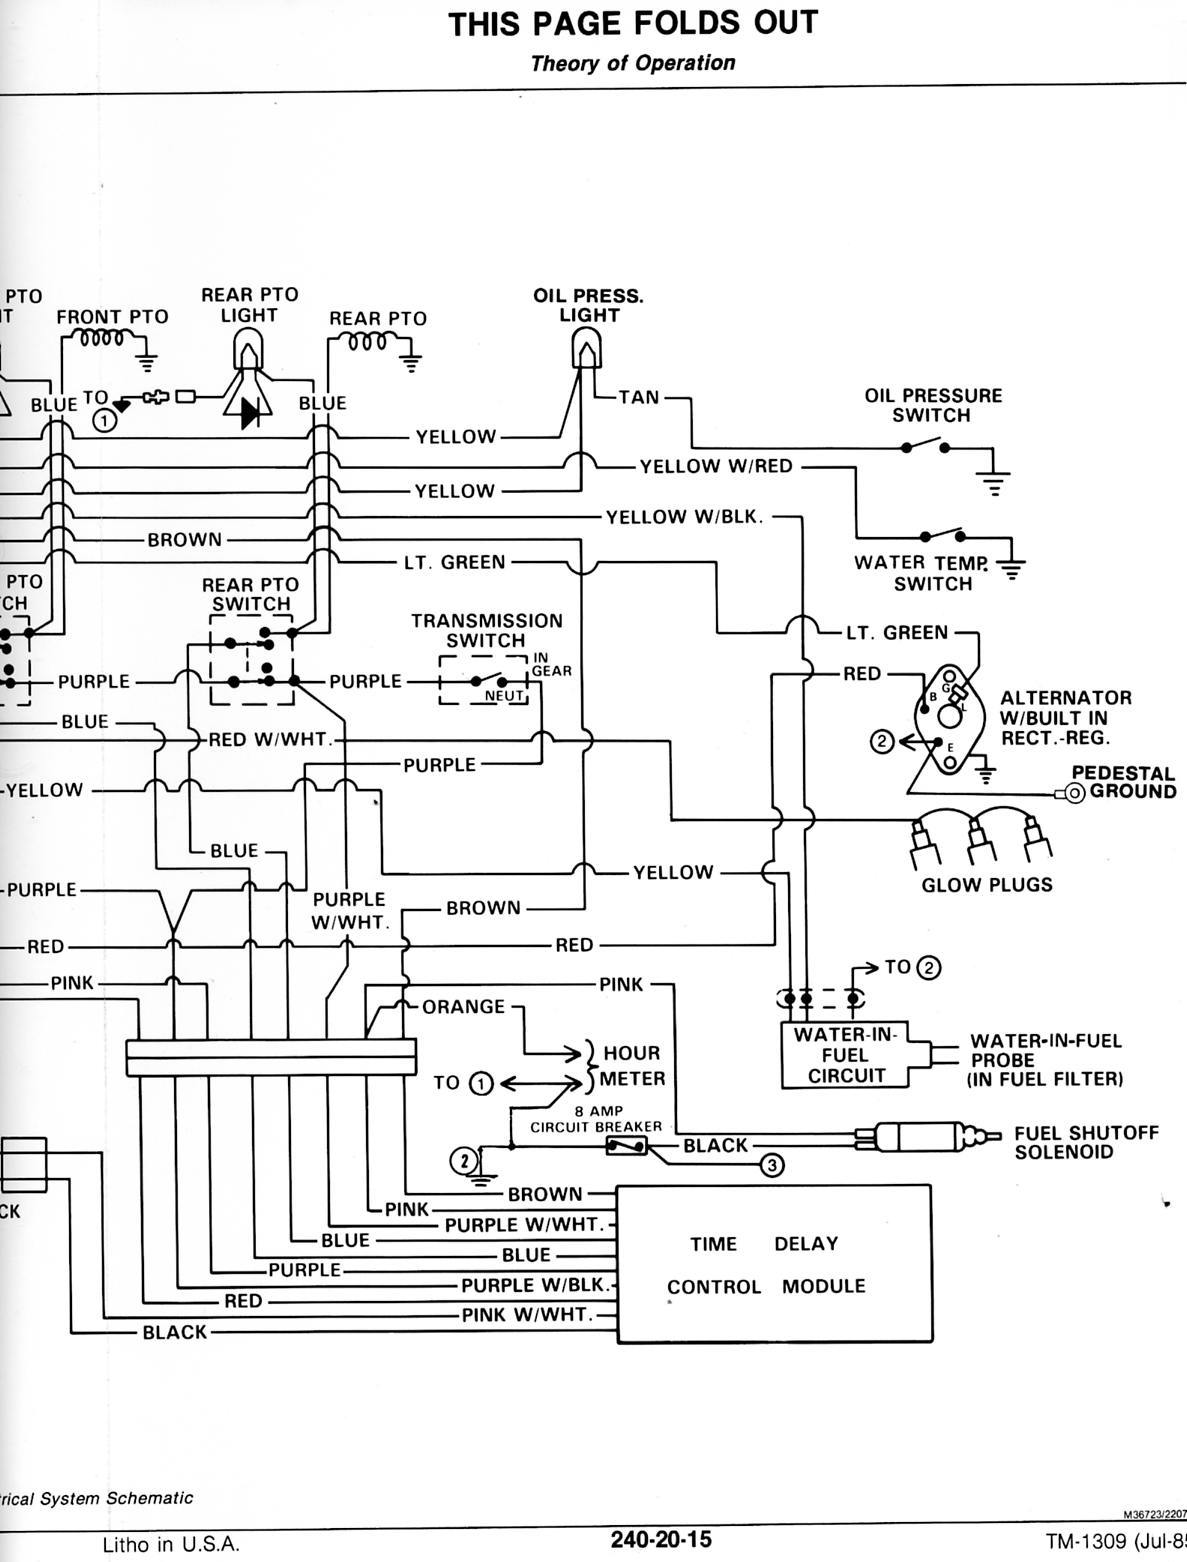 [ZH_4174] 1070 Case Wiring Diagram Schematic Wiring